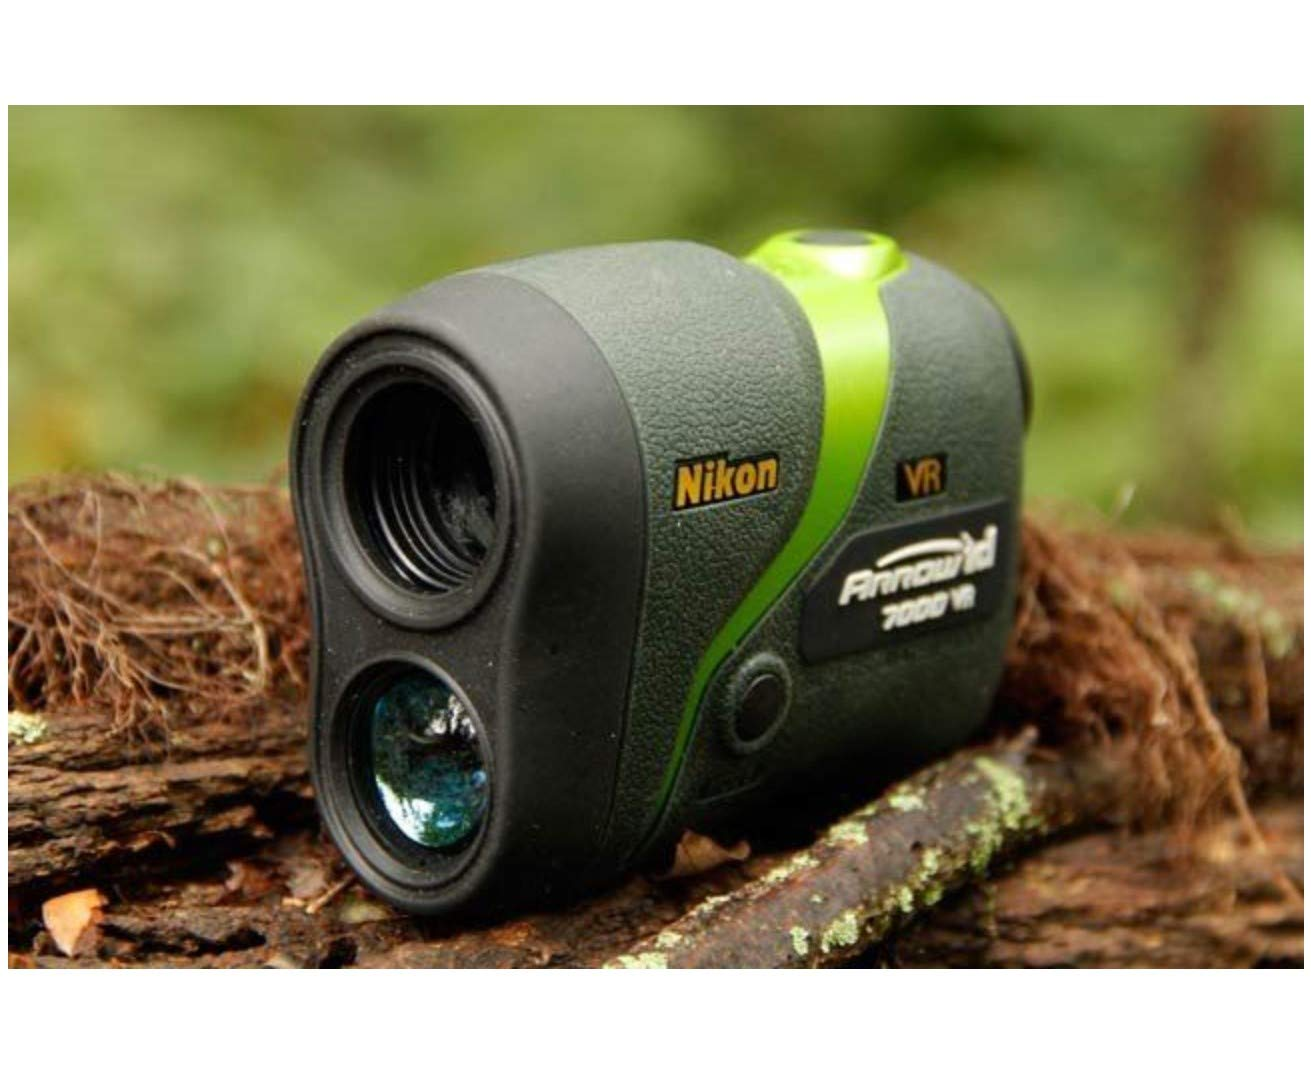 Amazon nikon arrow id vr bowhunting laser rangefinder